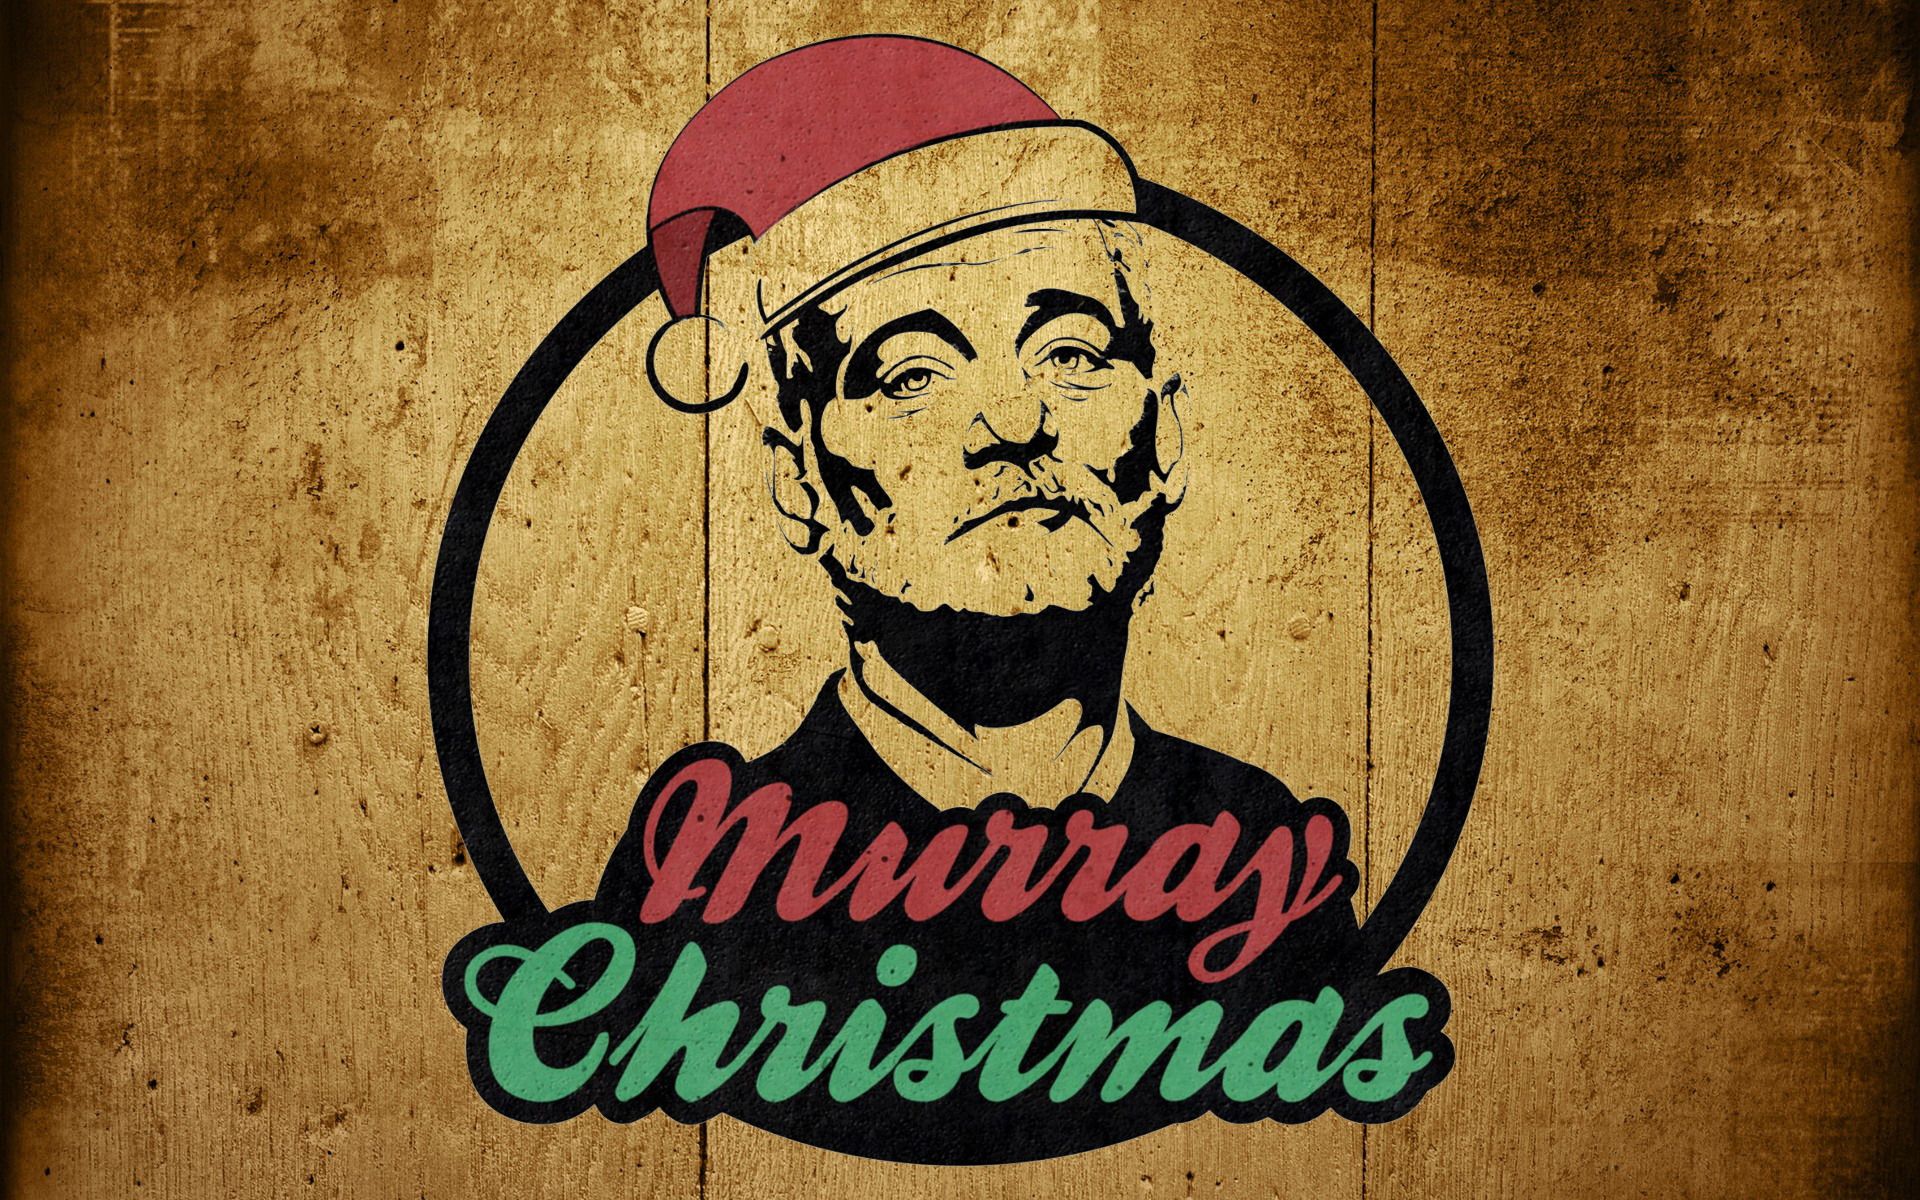 bill murray hd wallpaper - photo #30